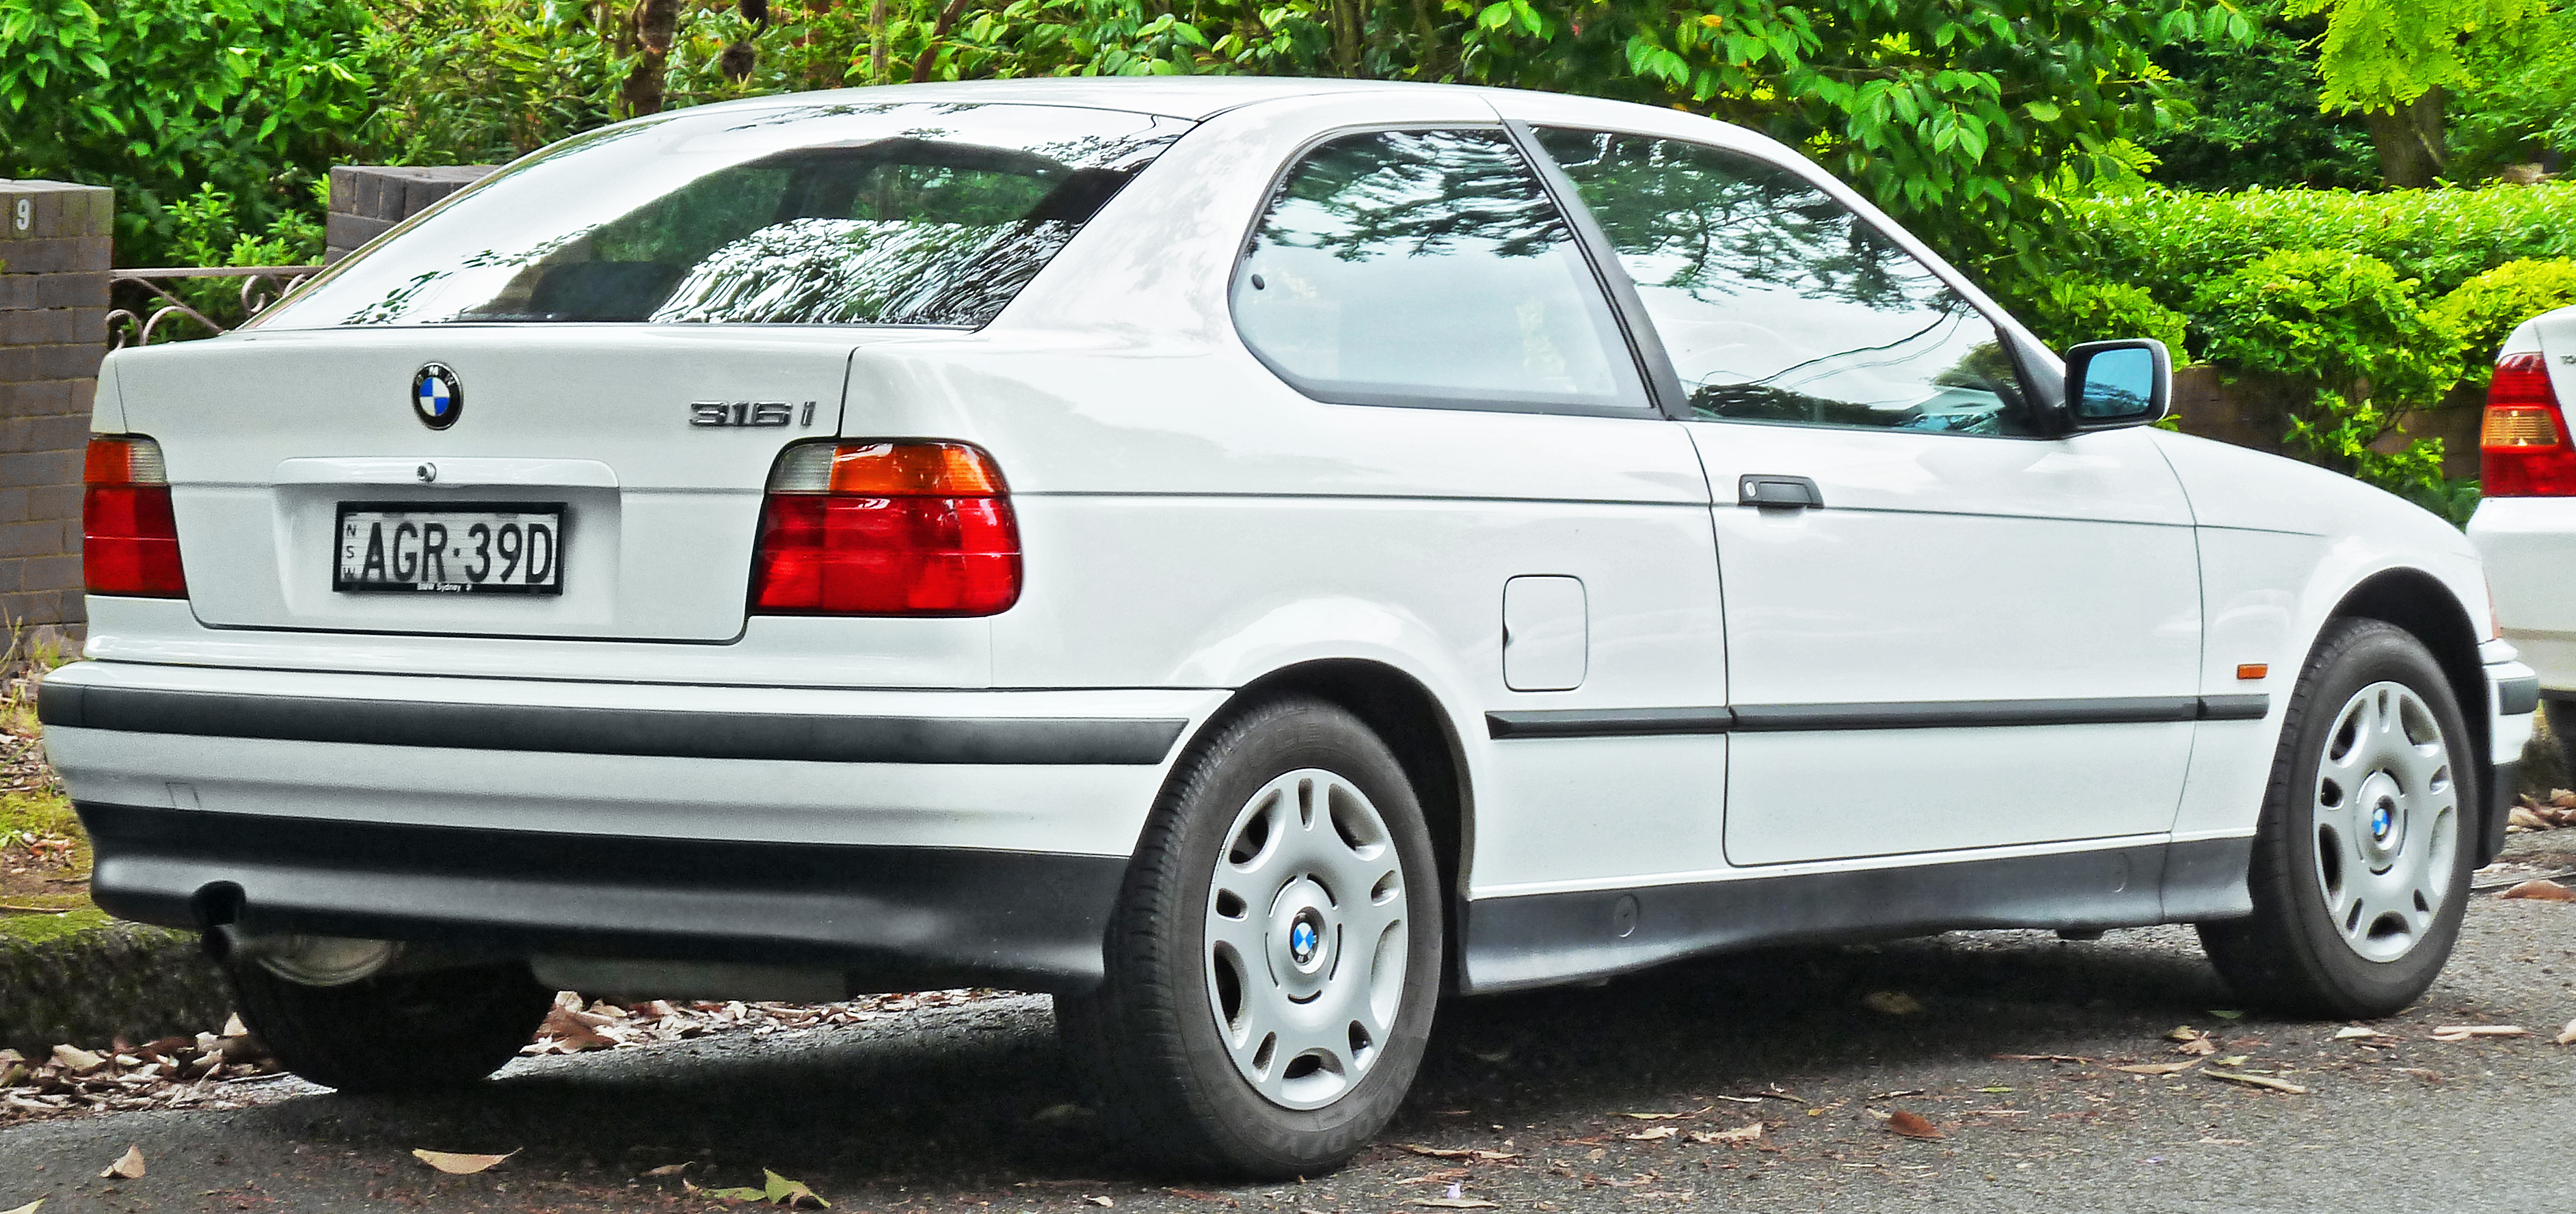 file 1998 bmw 316i e36 hatchback 2011 11 18 wikimedia commons. Black Bedroom Furniture Sets. Home Design Ideas